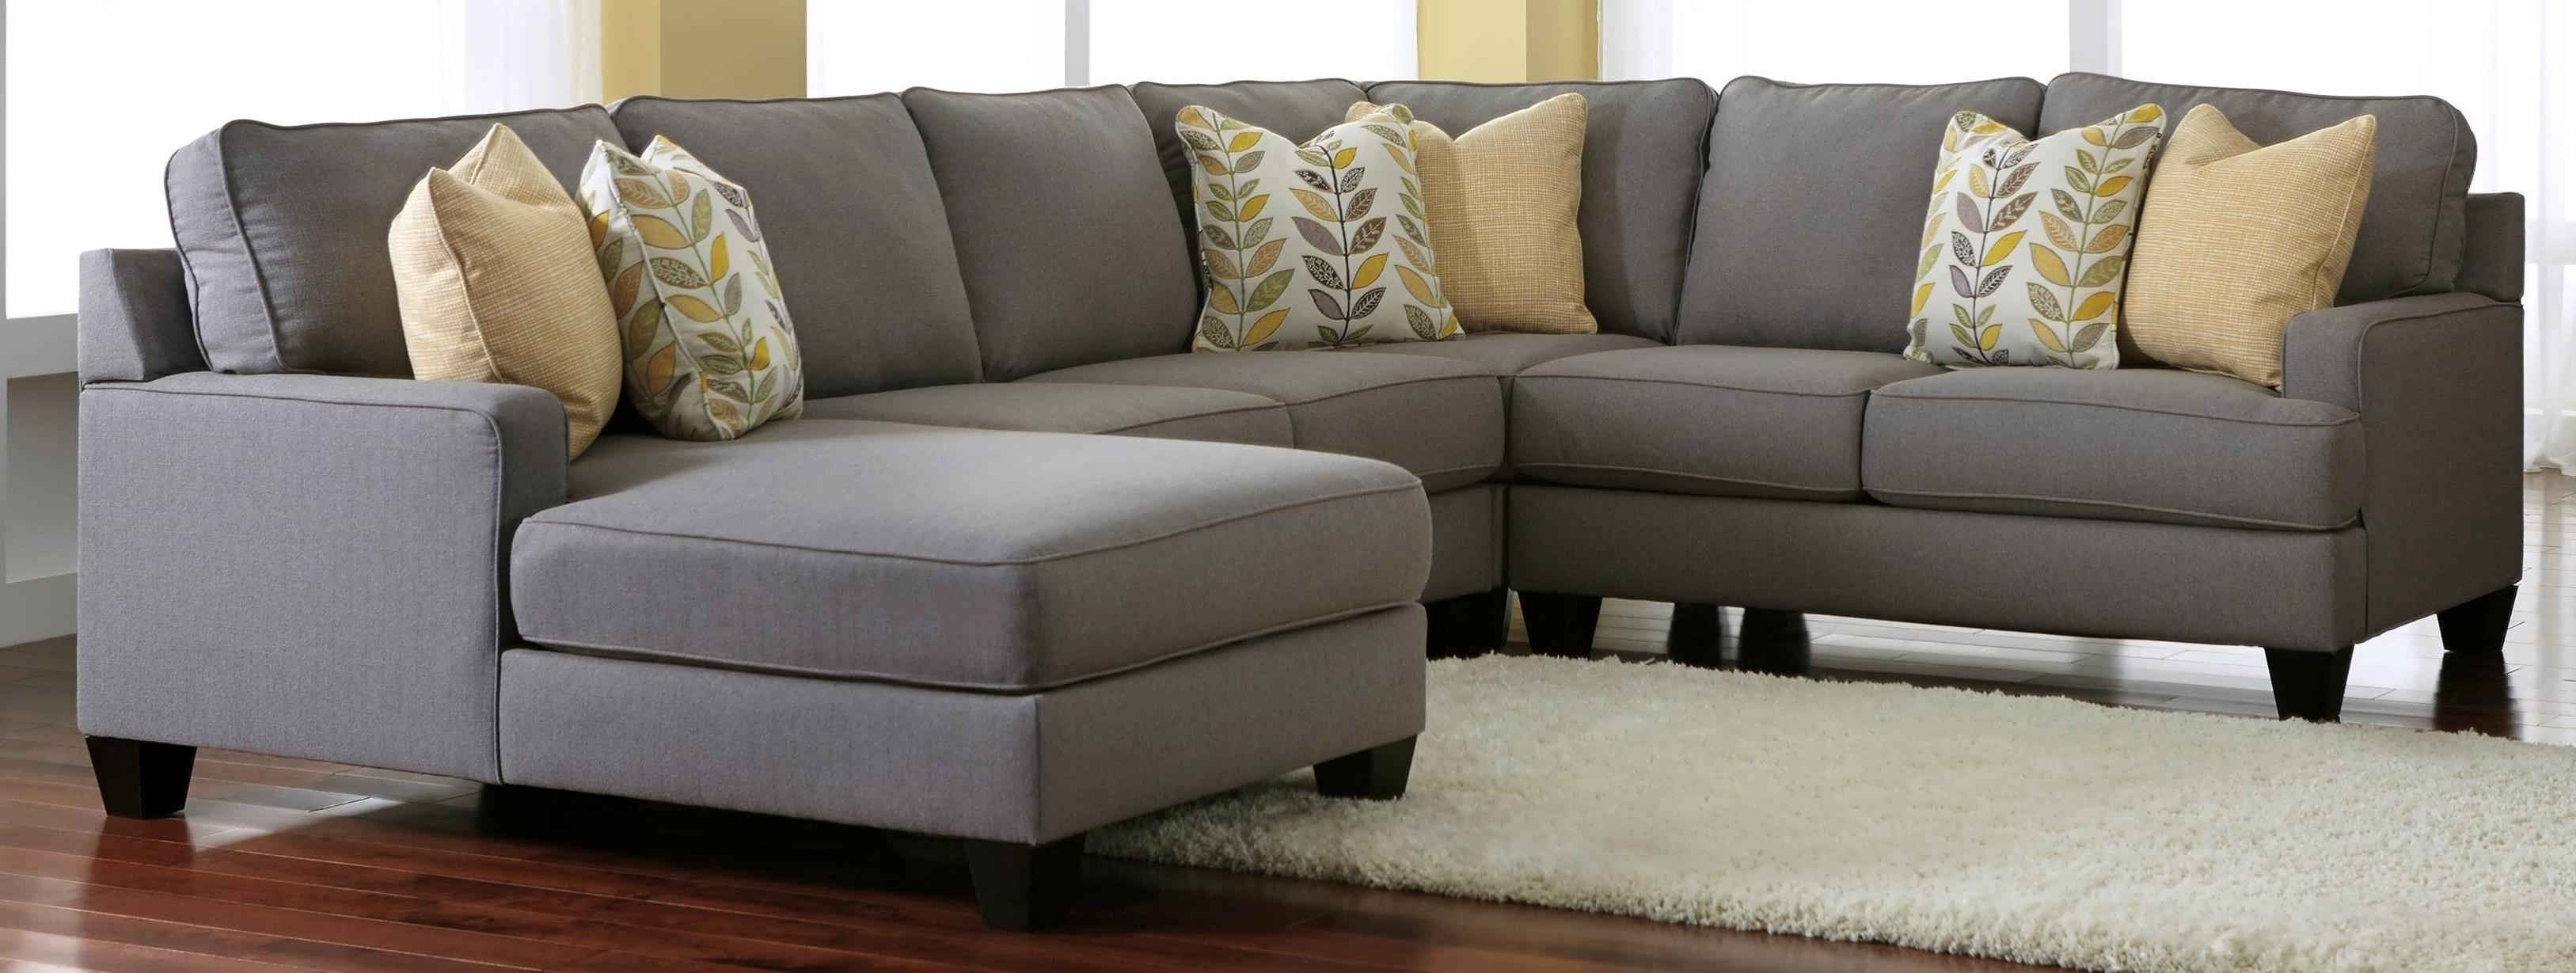 Latest Sofa : Cheap Sectionals Gray Chaise Sofa Gray Sectional With With Chaise Sectionals (View 9 of 15)